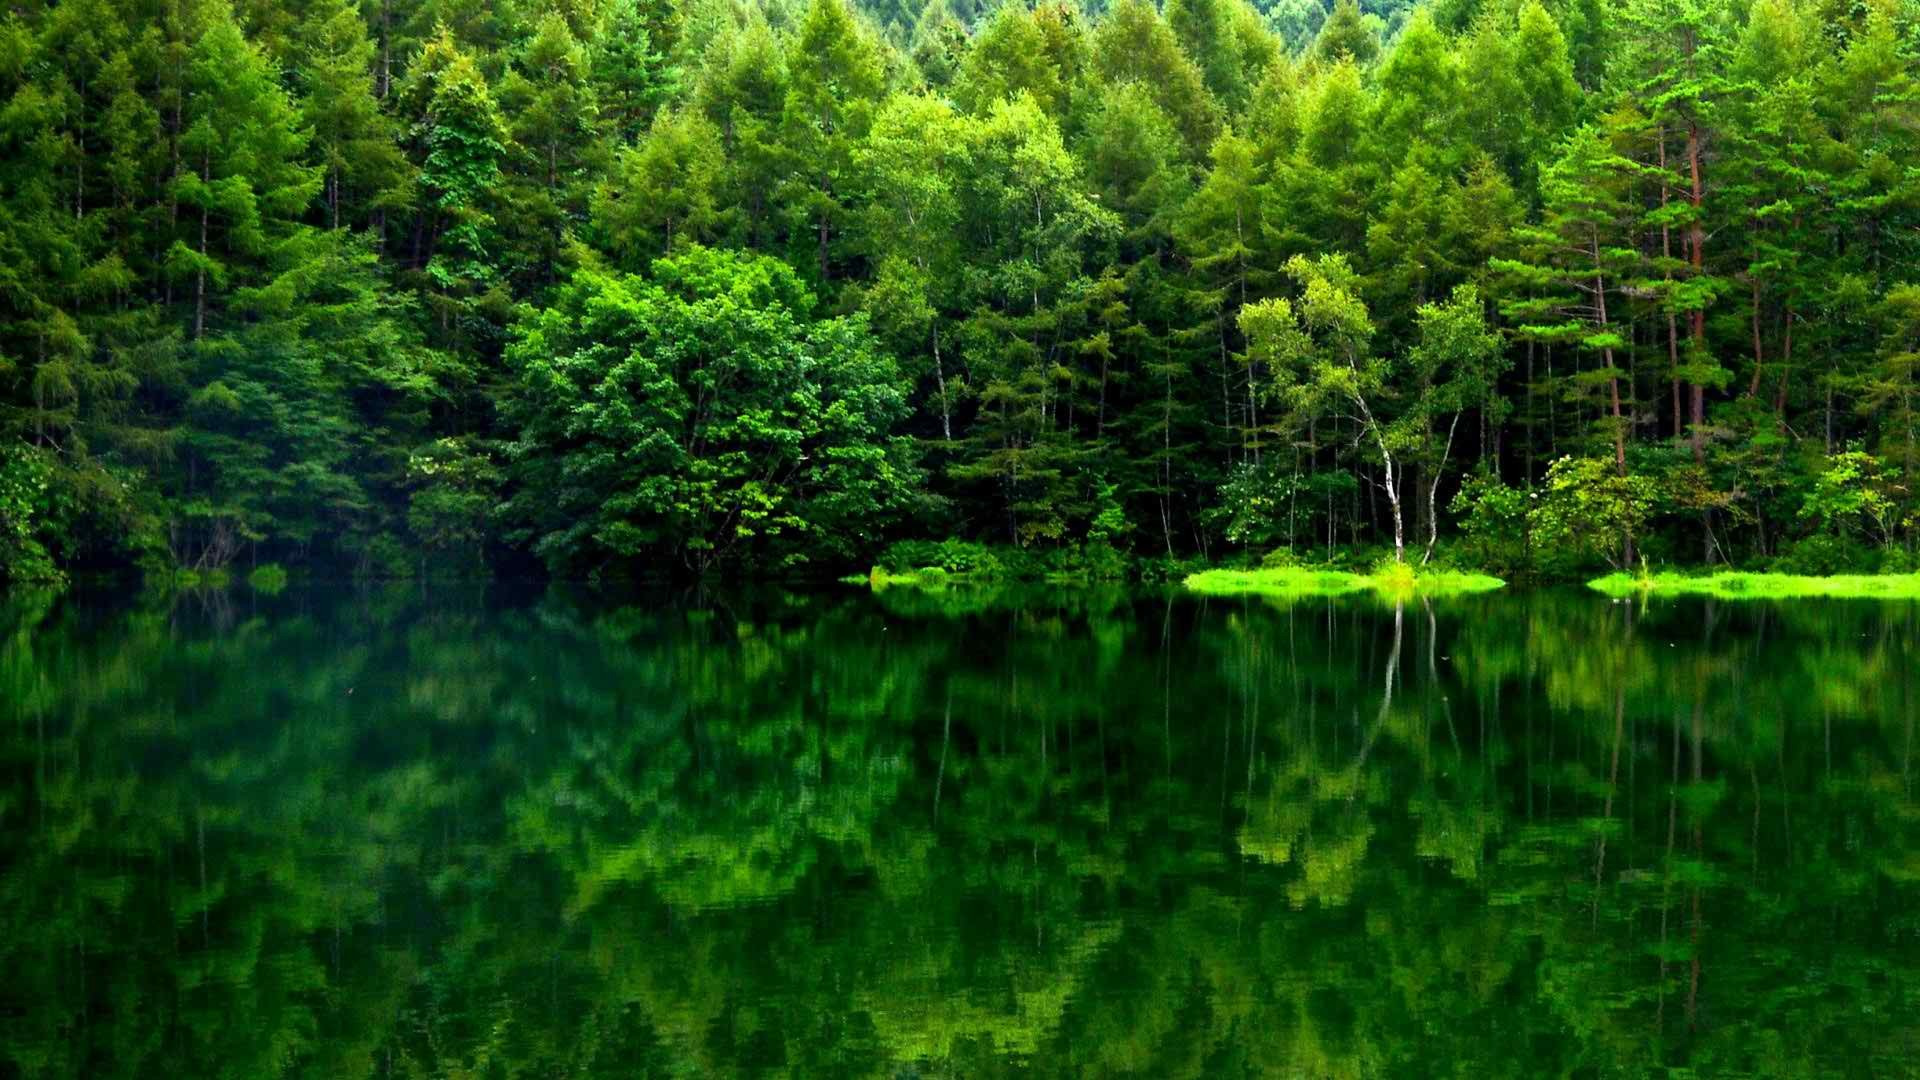 Green Forest Wallpaper (71+ images)